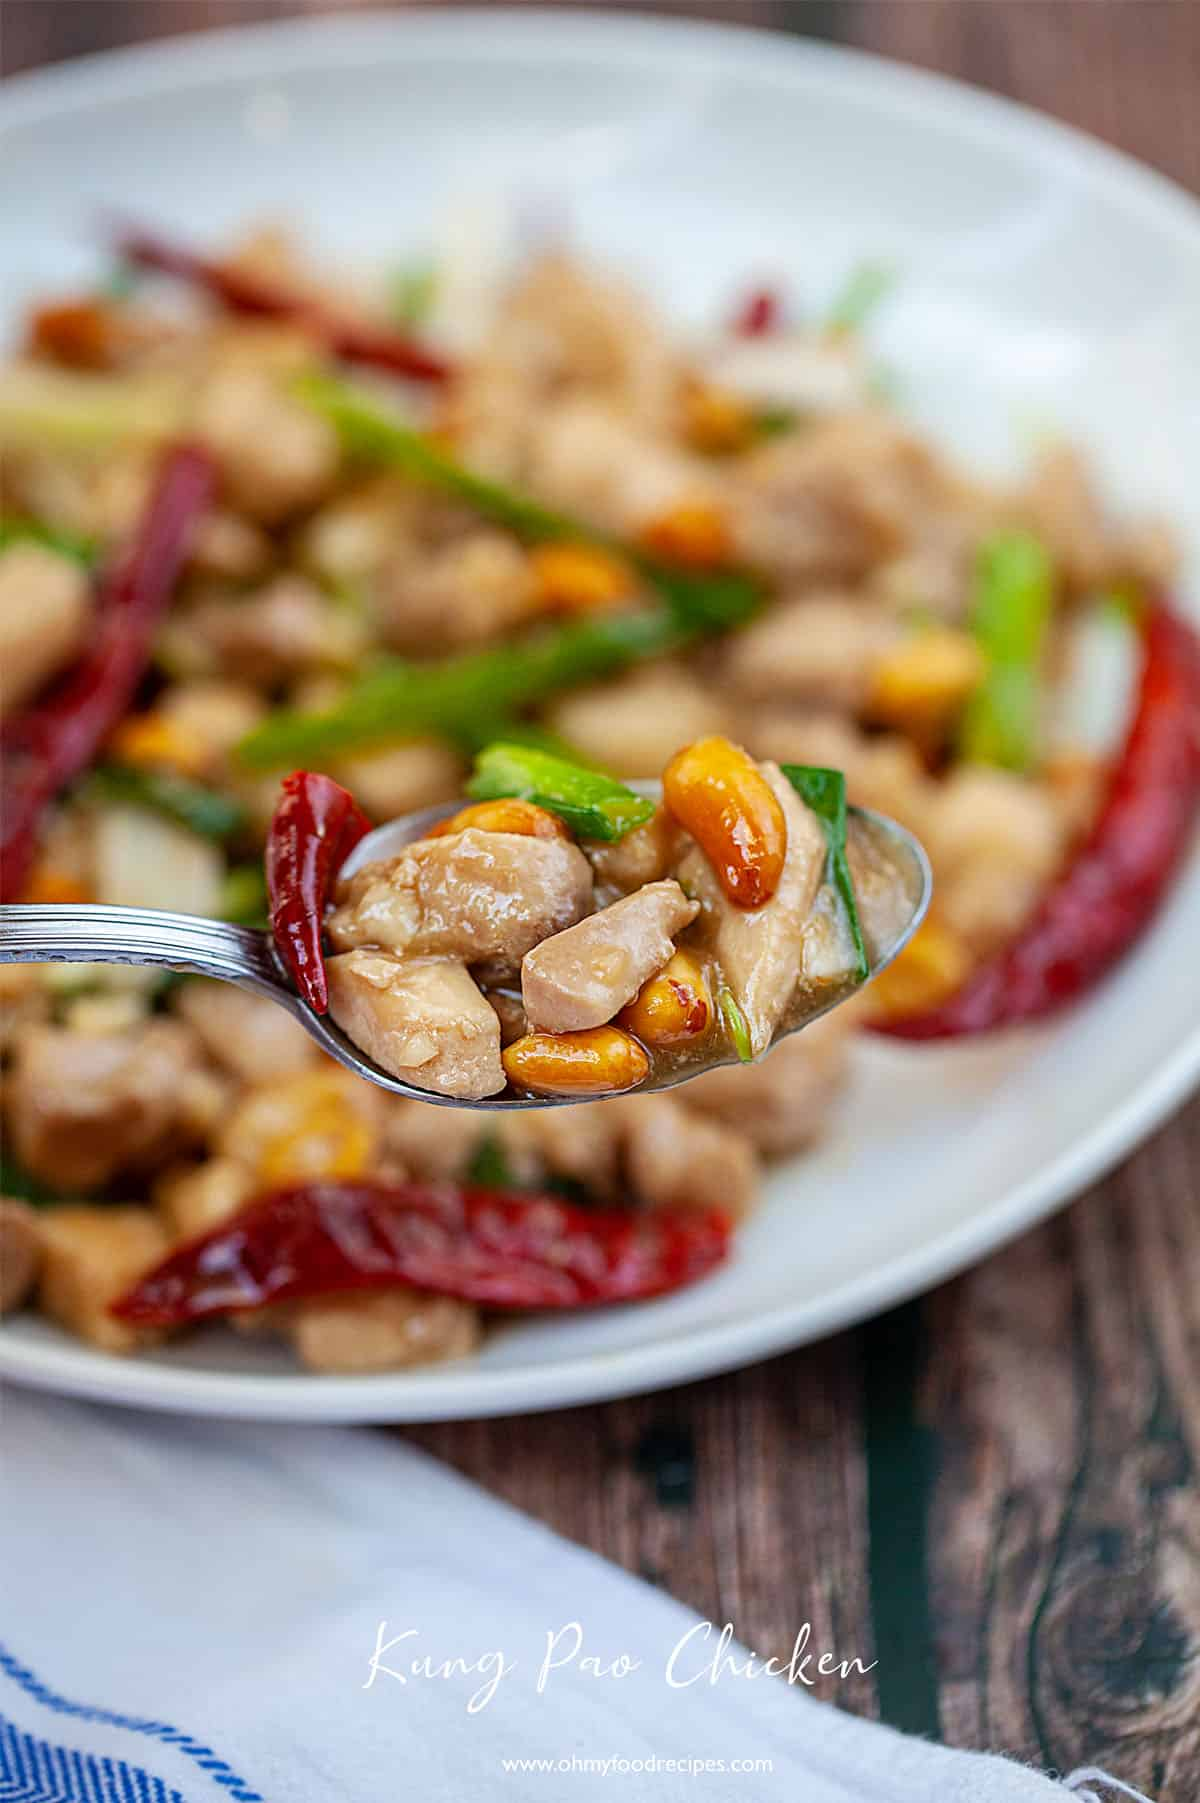 kung pao chicken on a sliver spoon